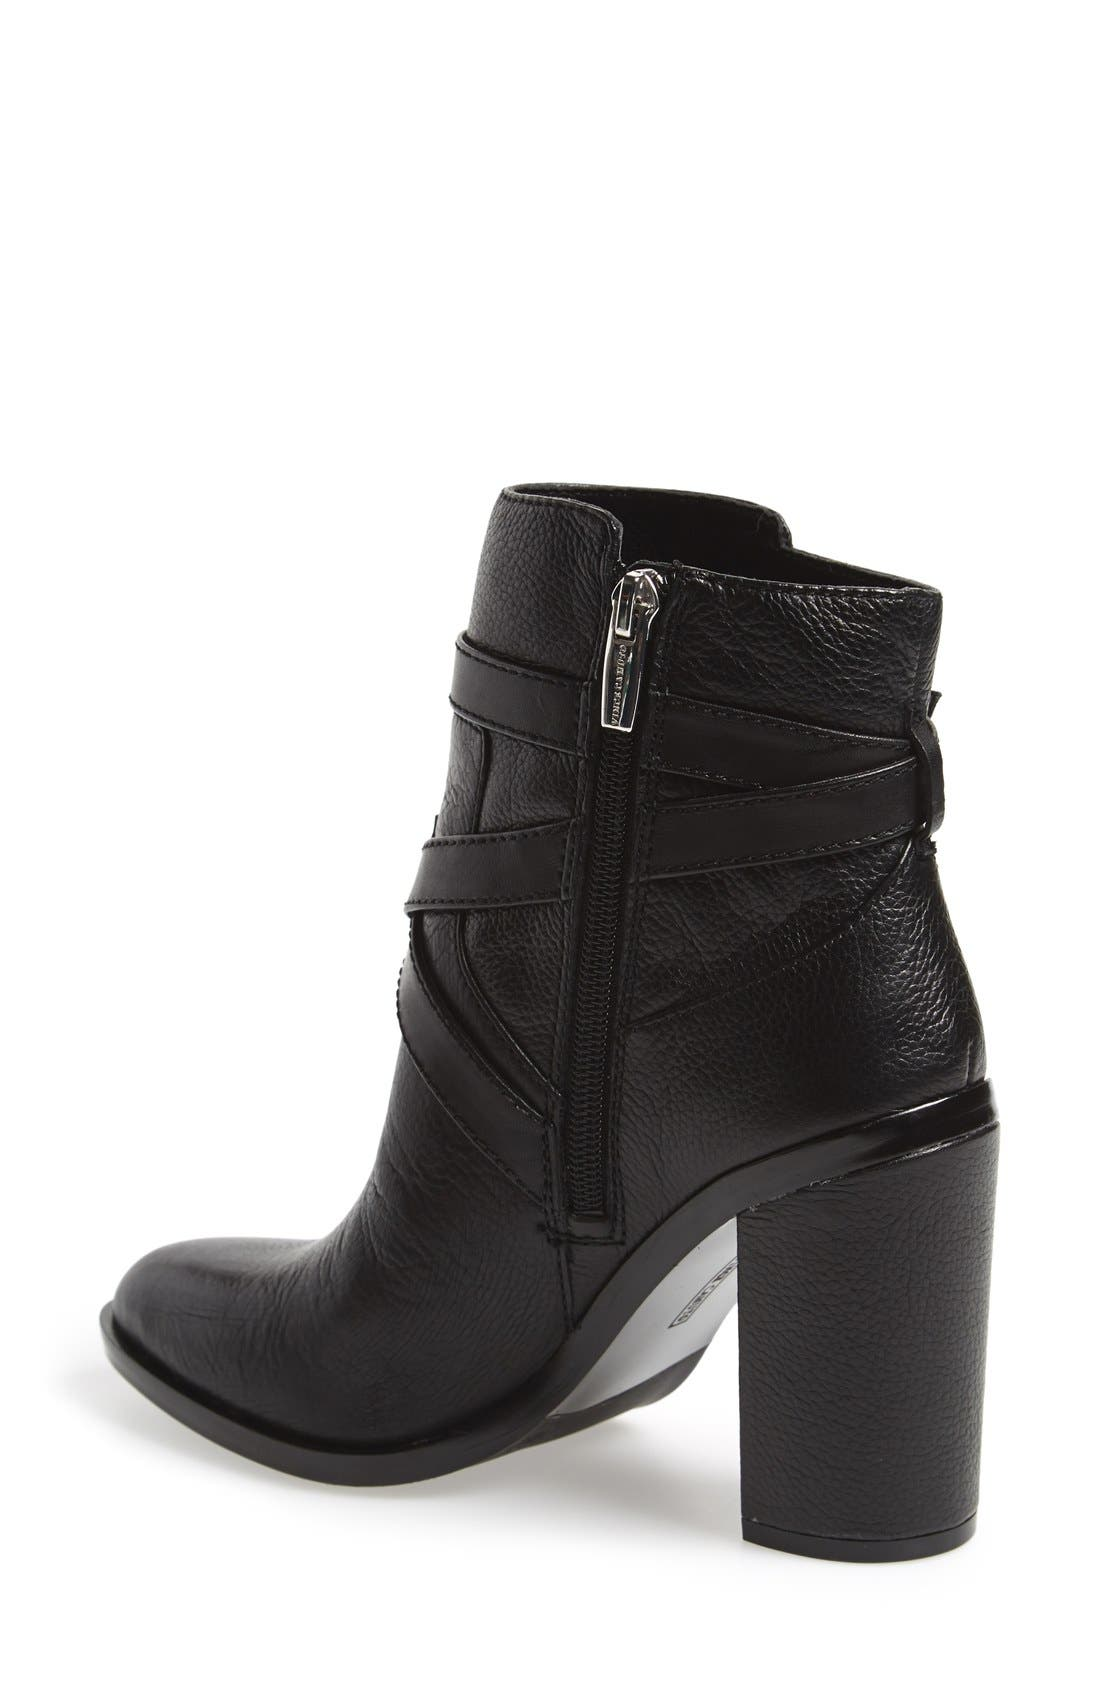 VINCE CAMUTO, 'Gravell' Belted Boot, Alternate thumbnail 2, color, 001